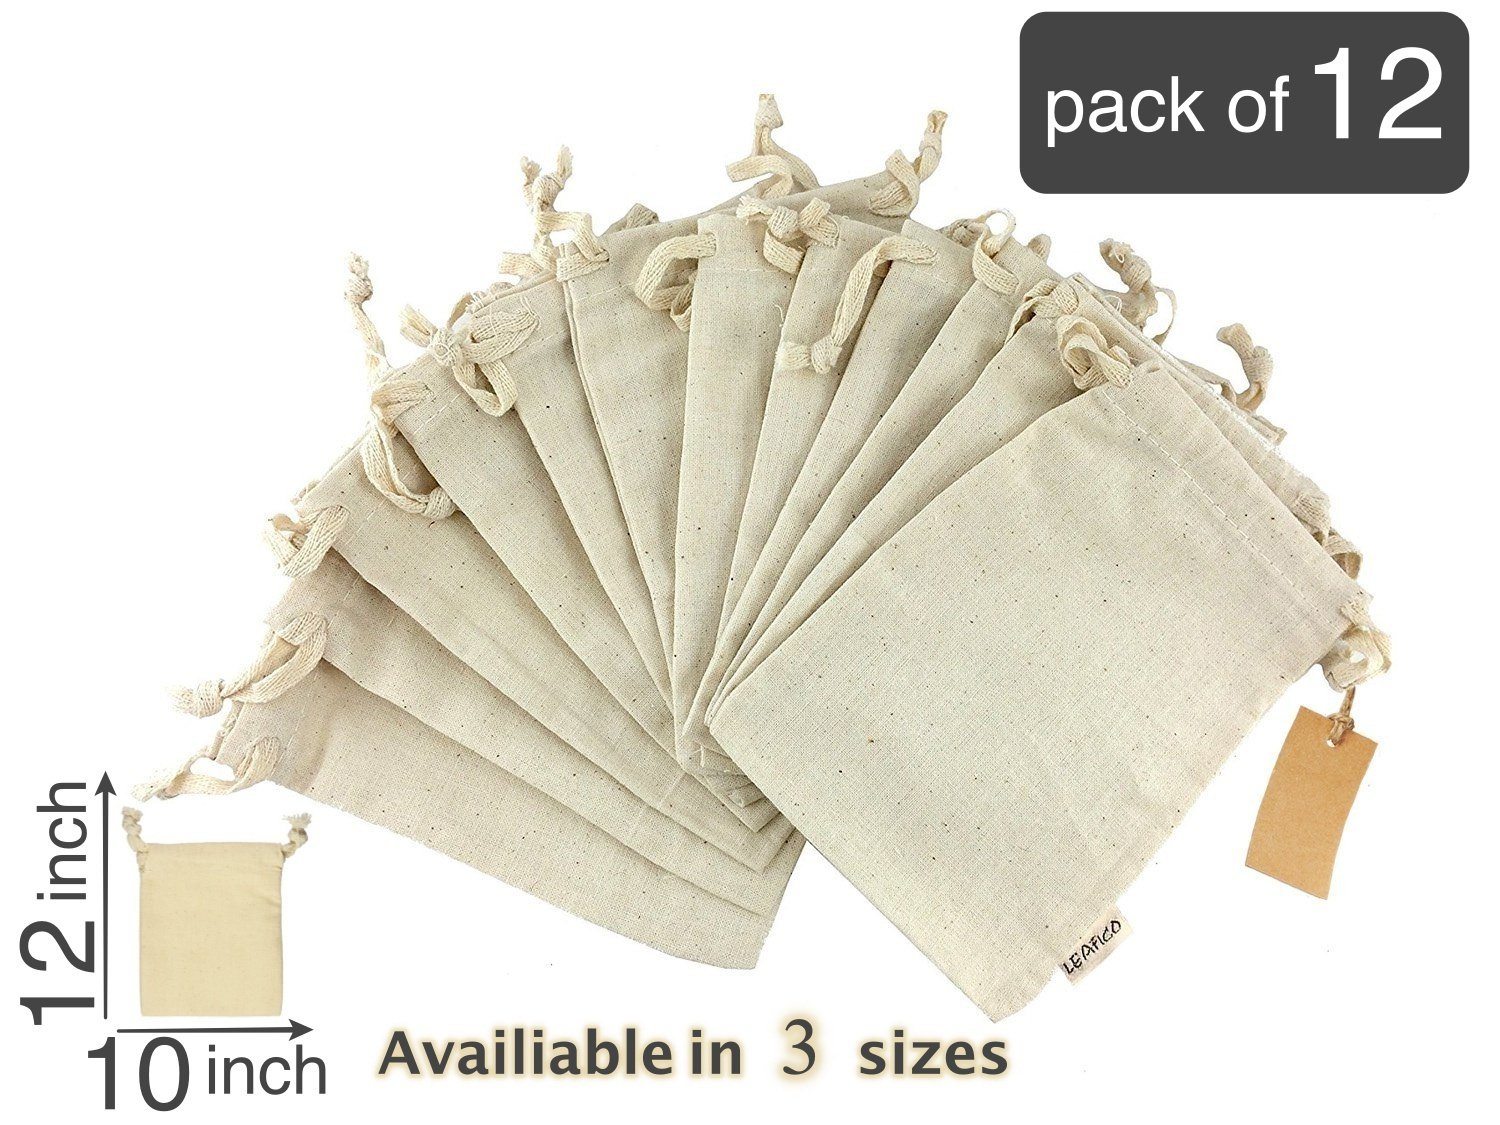 8239d73bbc Eco bags, Reusable Grocery Bags Multipurpose Muslin Bags With Drawstring |  Large 10x12 Inches, Sachet Bags, Canvas Bags, Vegetable and Bread Bags, ...